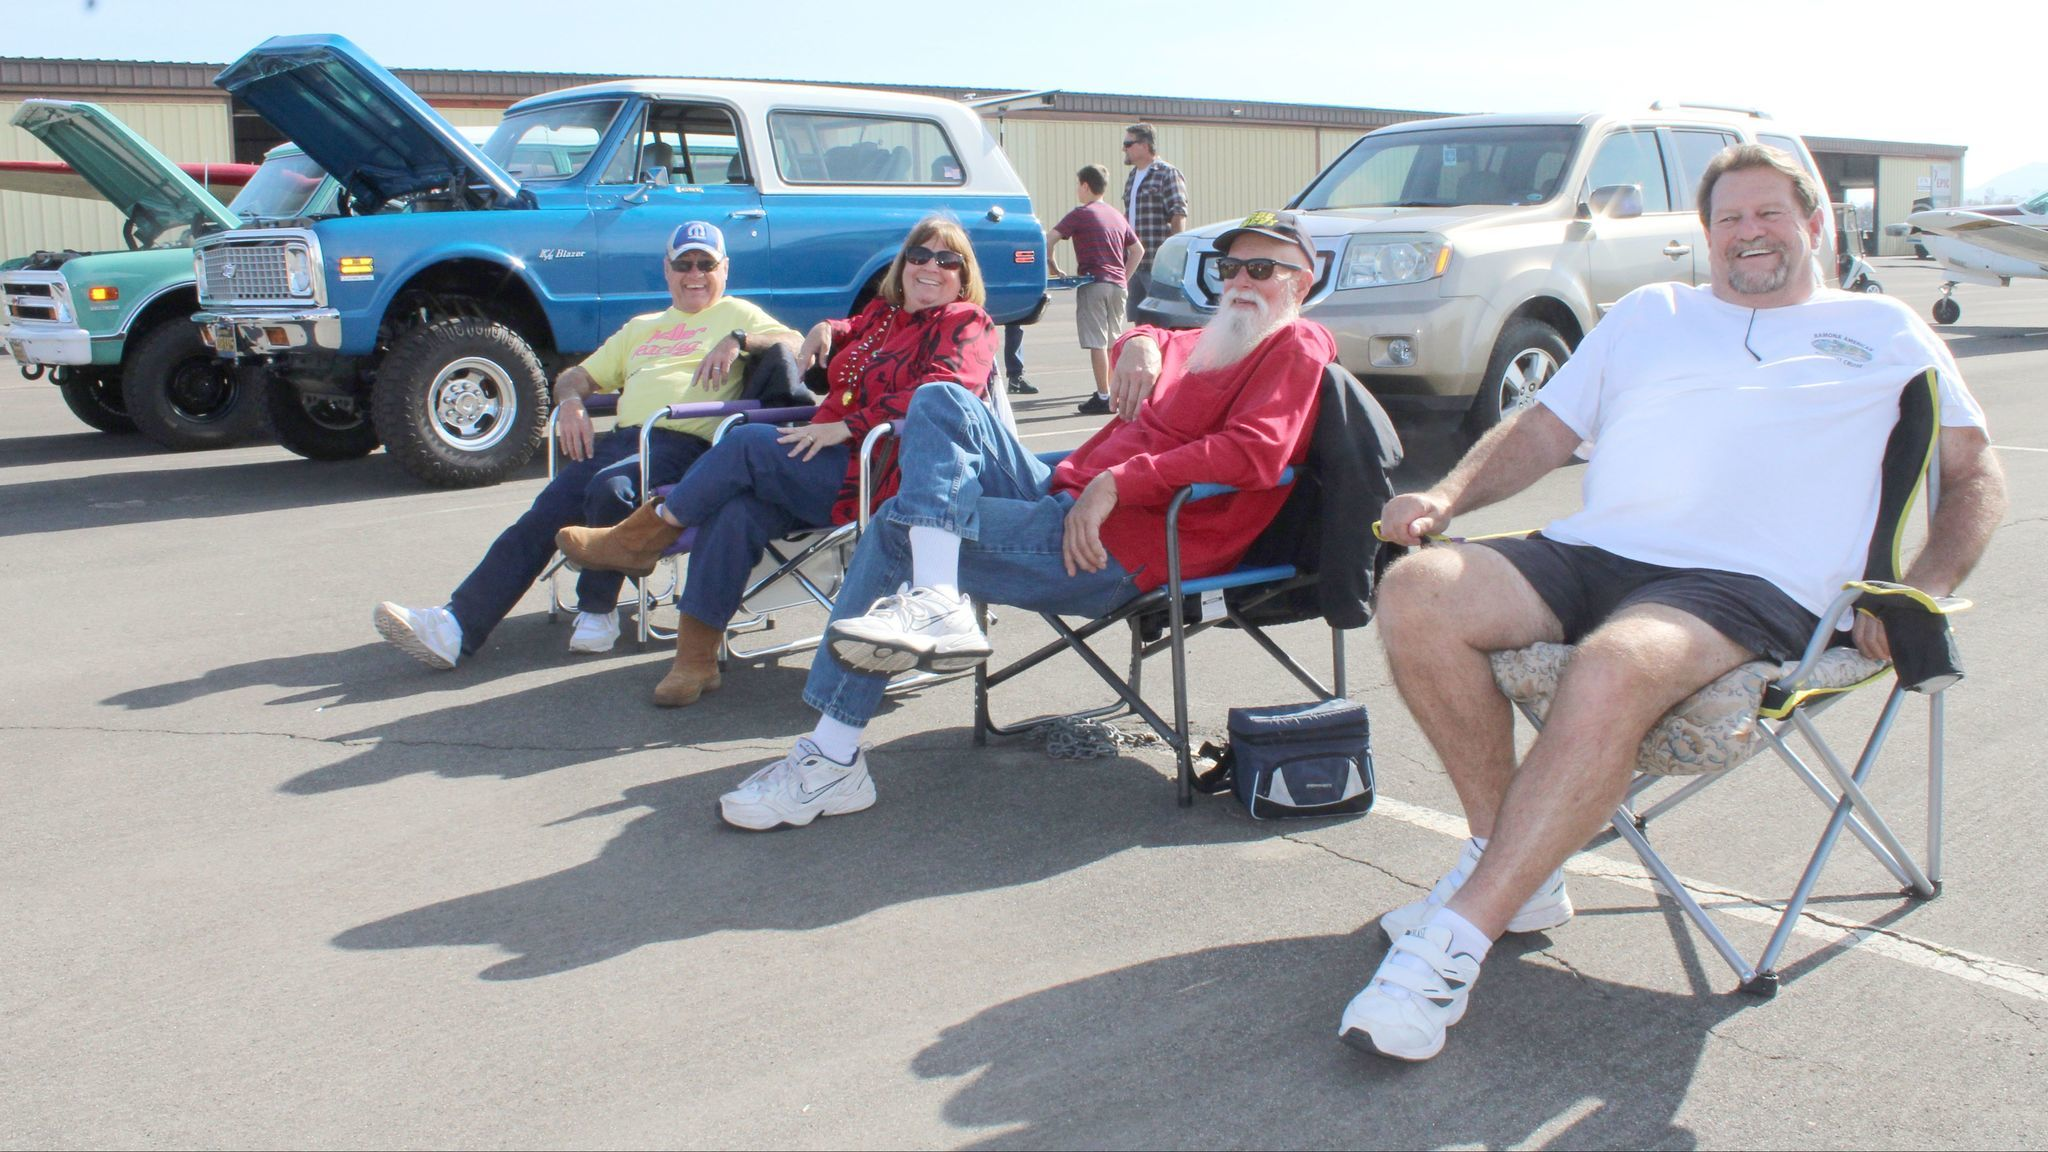 From left, Jerry and Kristy Keller, Marvin Bauer and Jay Christopher are among car show participants.